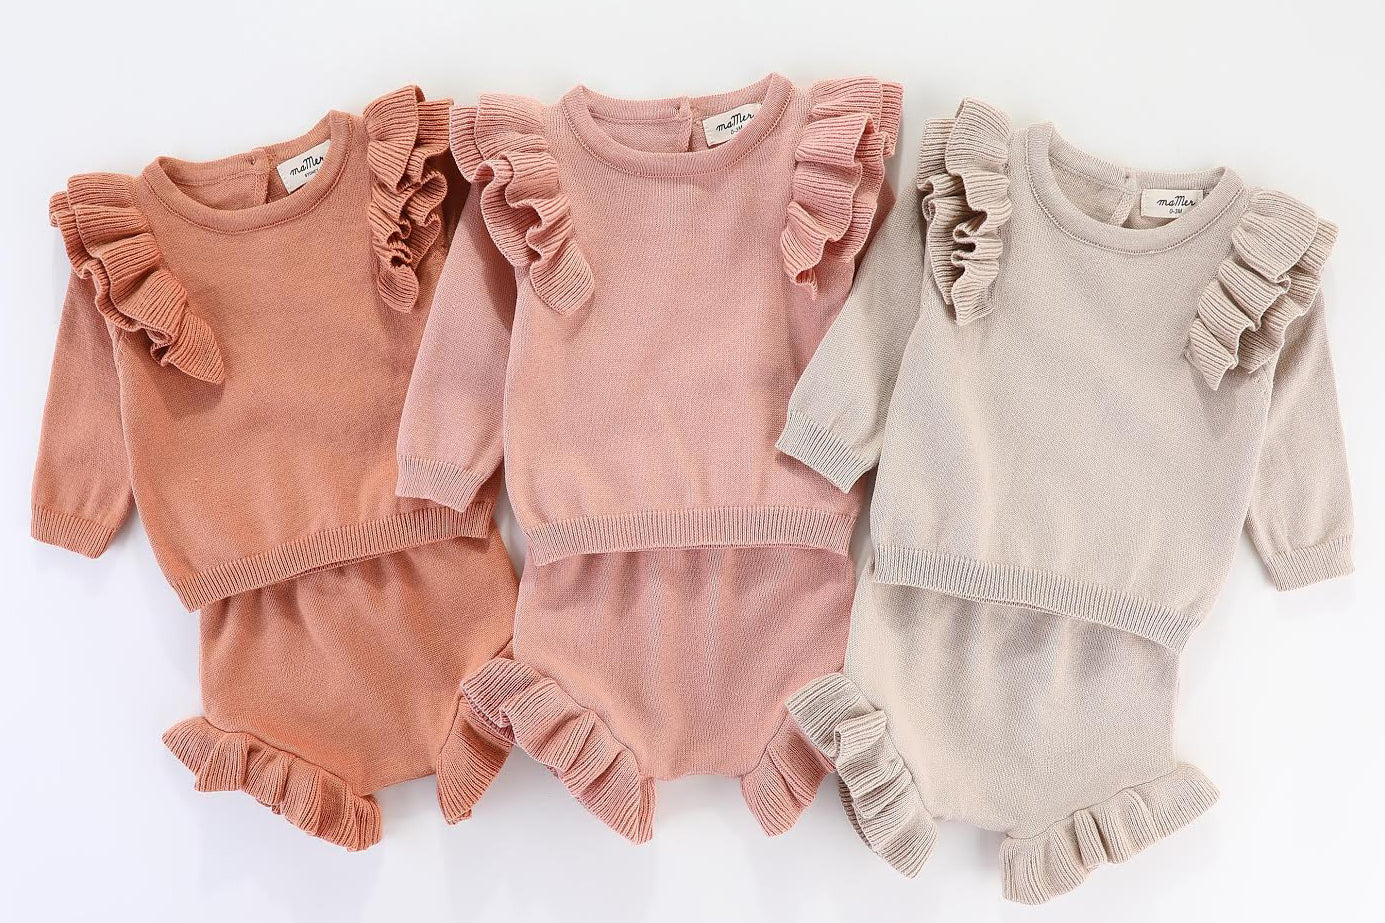 PREORDER: Gulia 2pcs Knitted Set: Jumper + bloomers: cream, peach, pink,